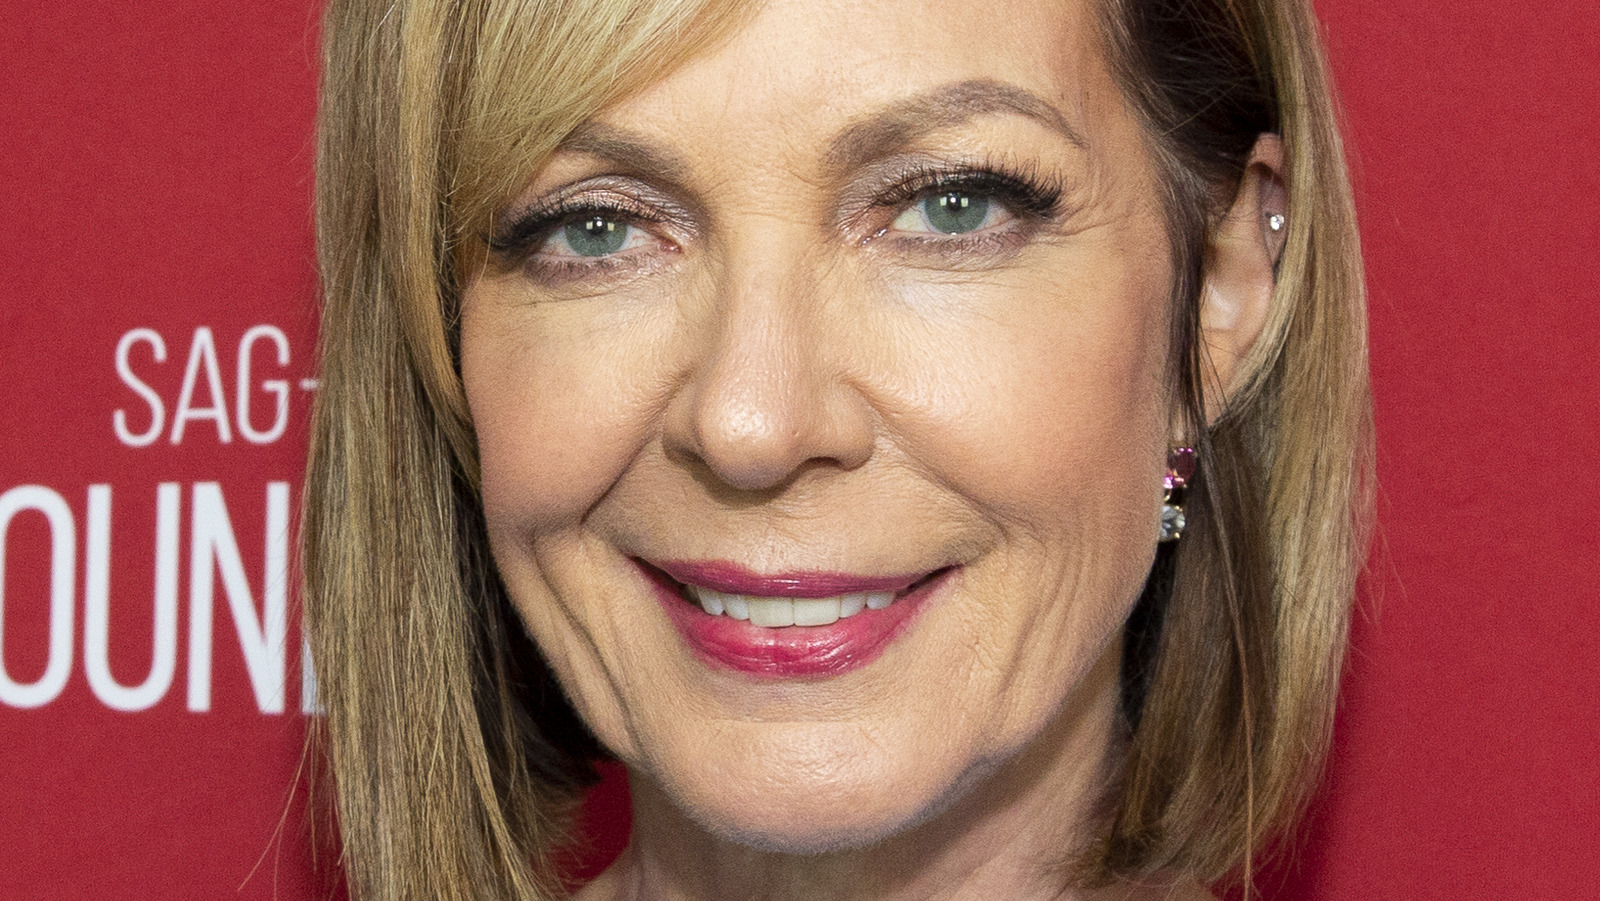 Allison Janney Opens Up About Never Getting Married Or Having Kids